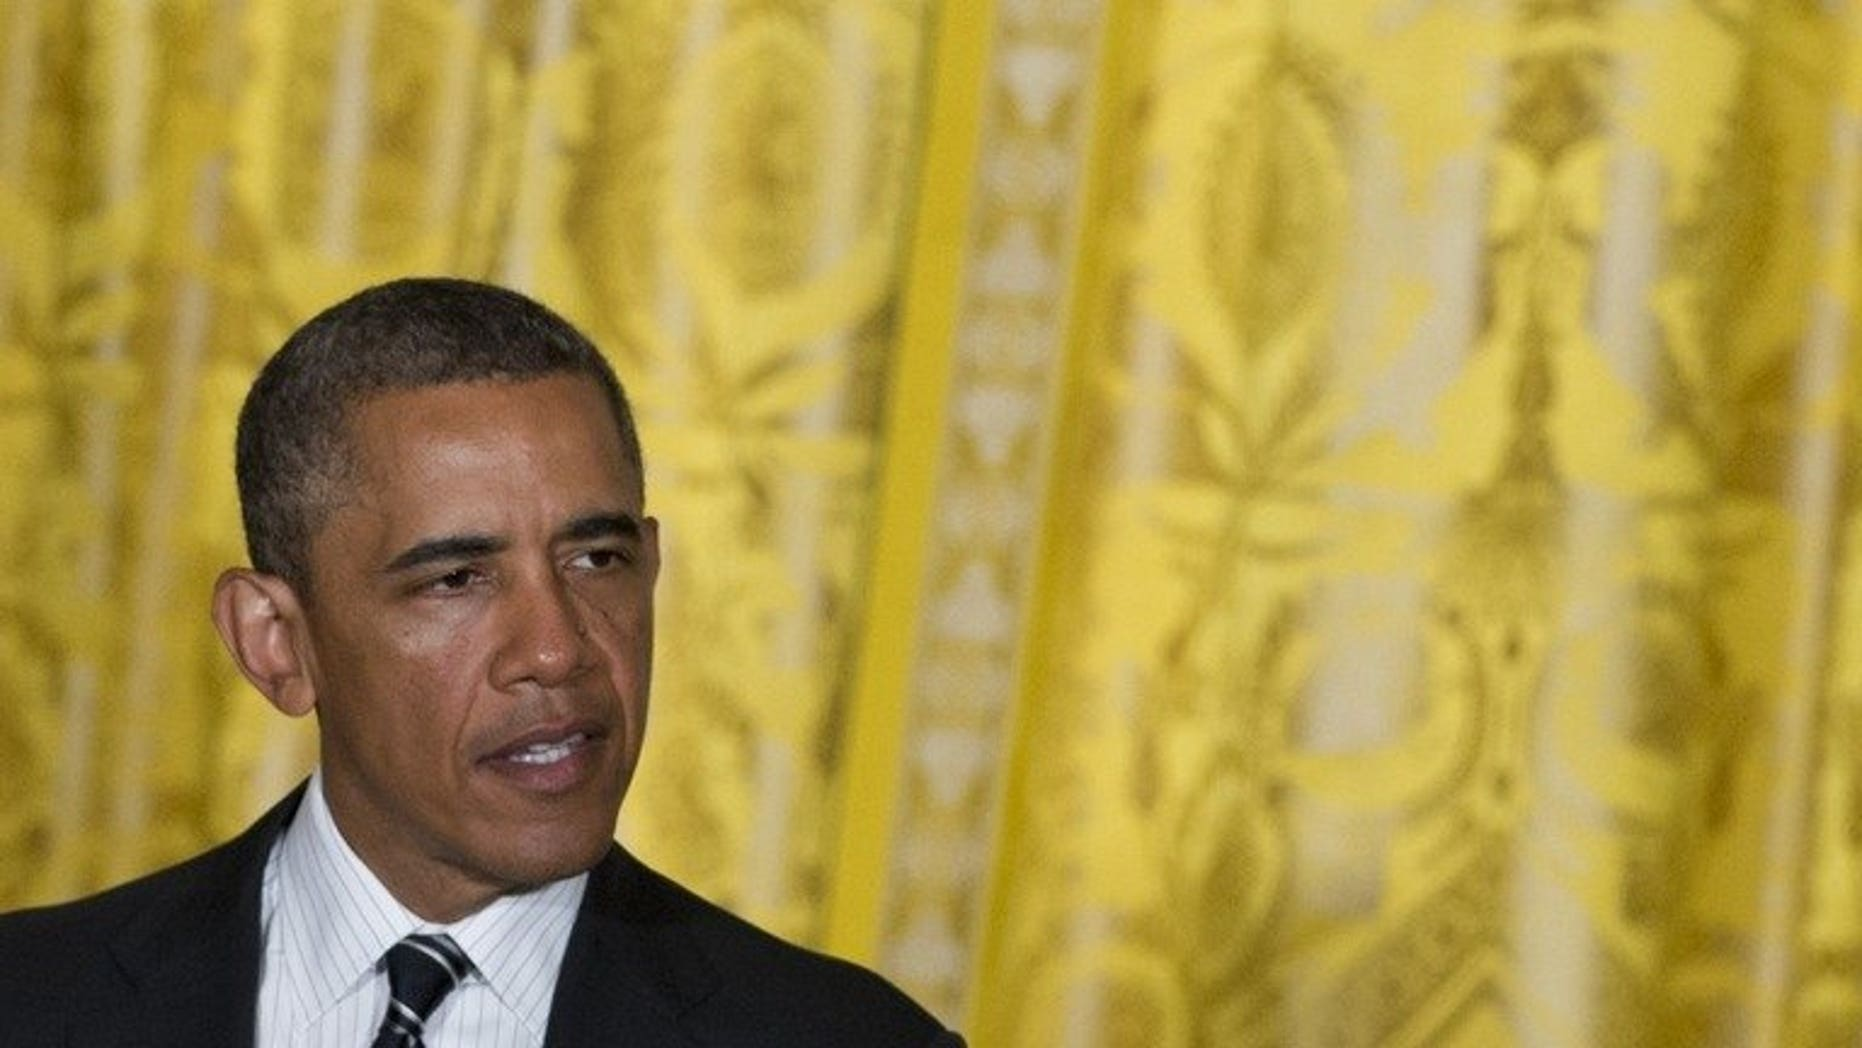 US President Barack Obama speaks during a LGBT Pride Month celebration in the East Room of the White House in Washington, DC, June 13, 2013. Obama is unlikely to see critically ill Nelson Mandela when he visits South Africa later this week, the country's minister of international relations said Tuesday.